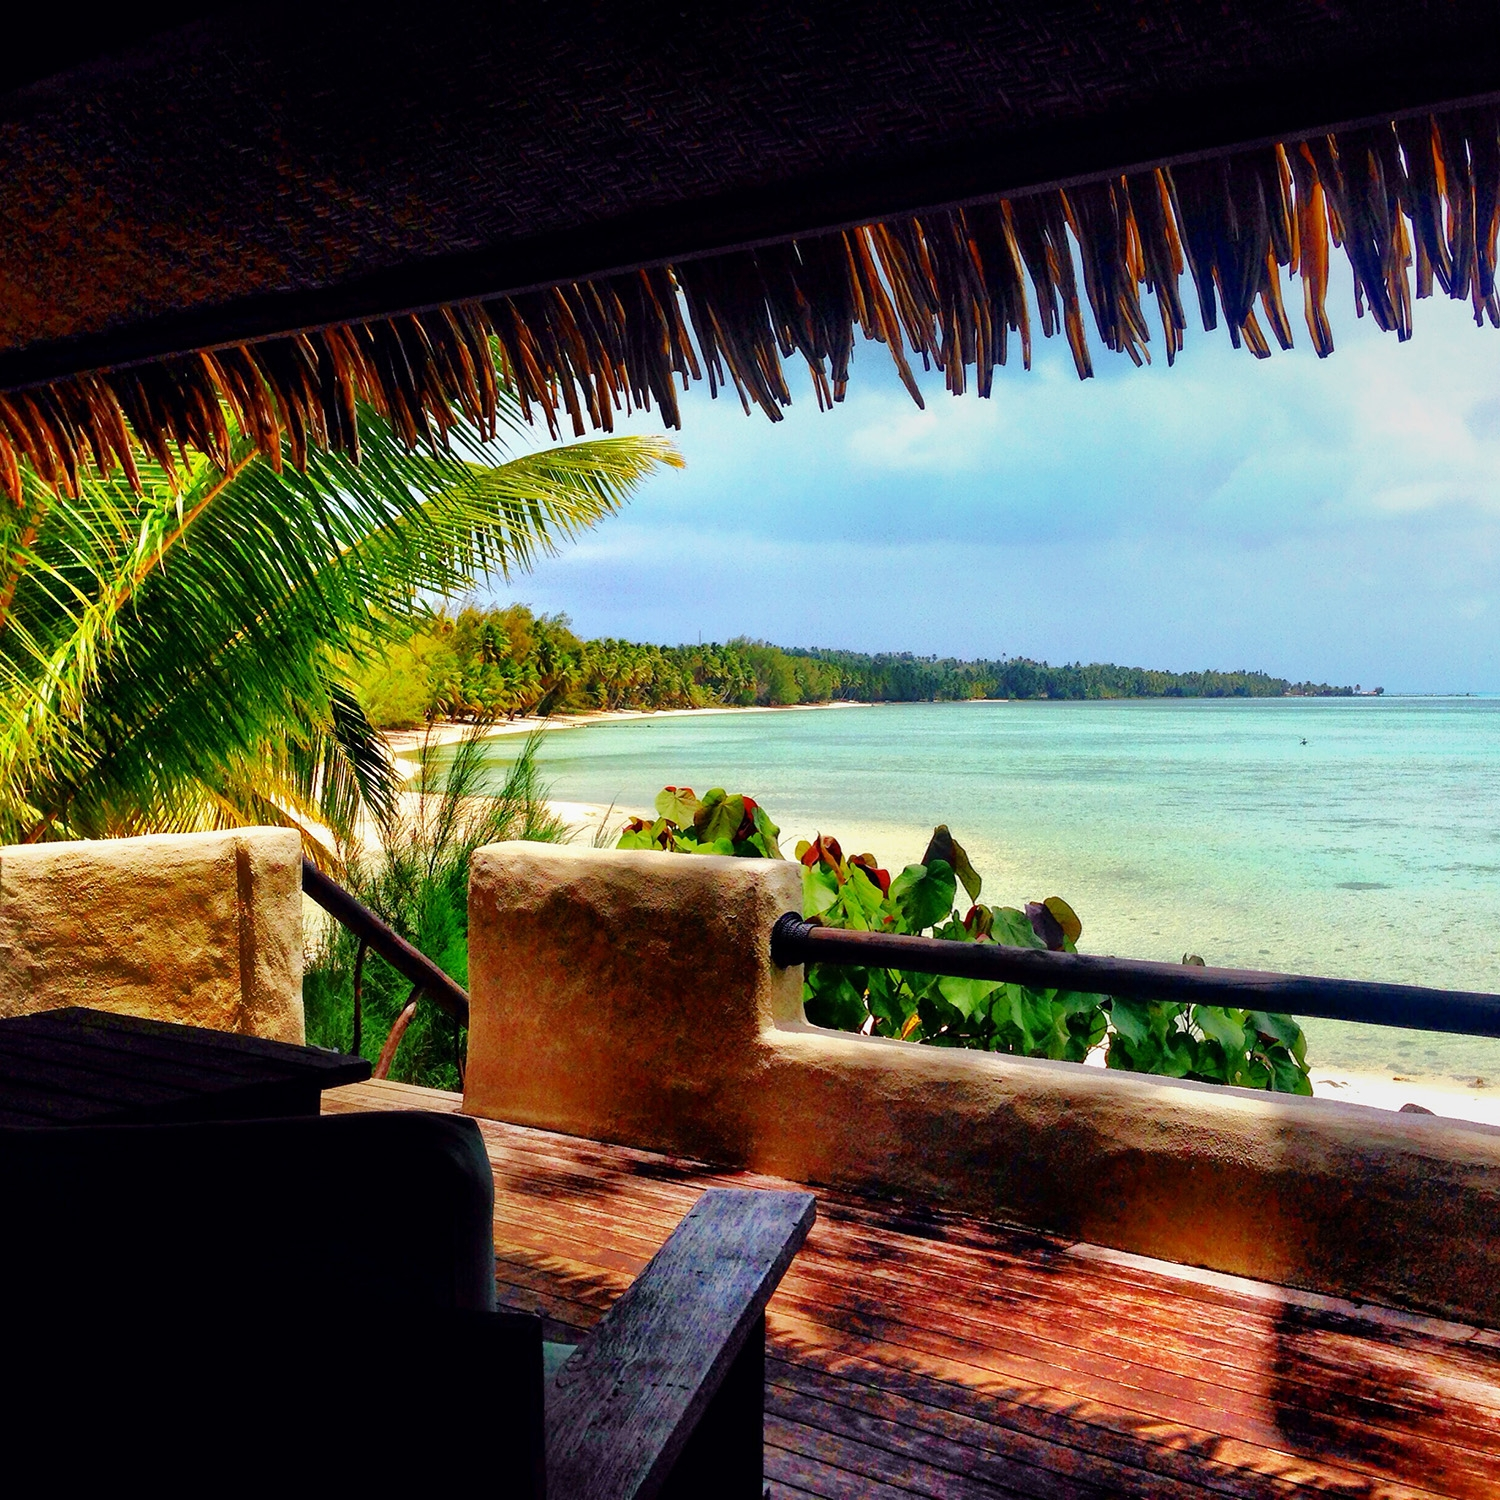 Looking out to pale blue waters from a shady cabana